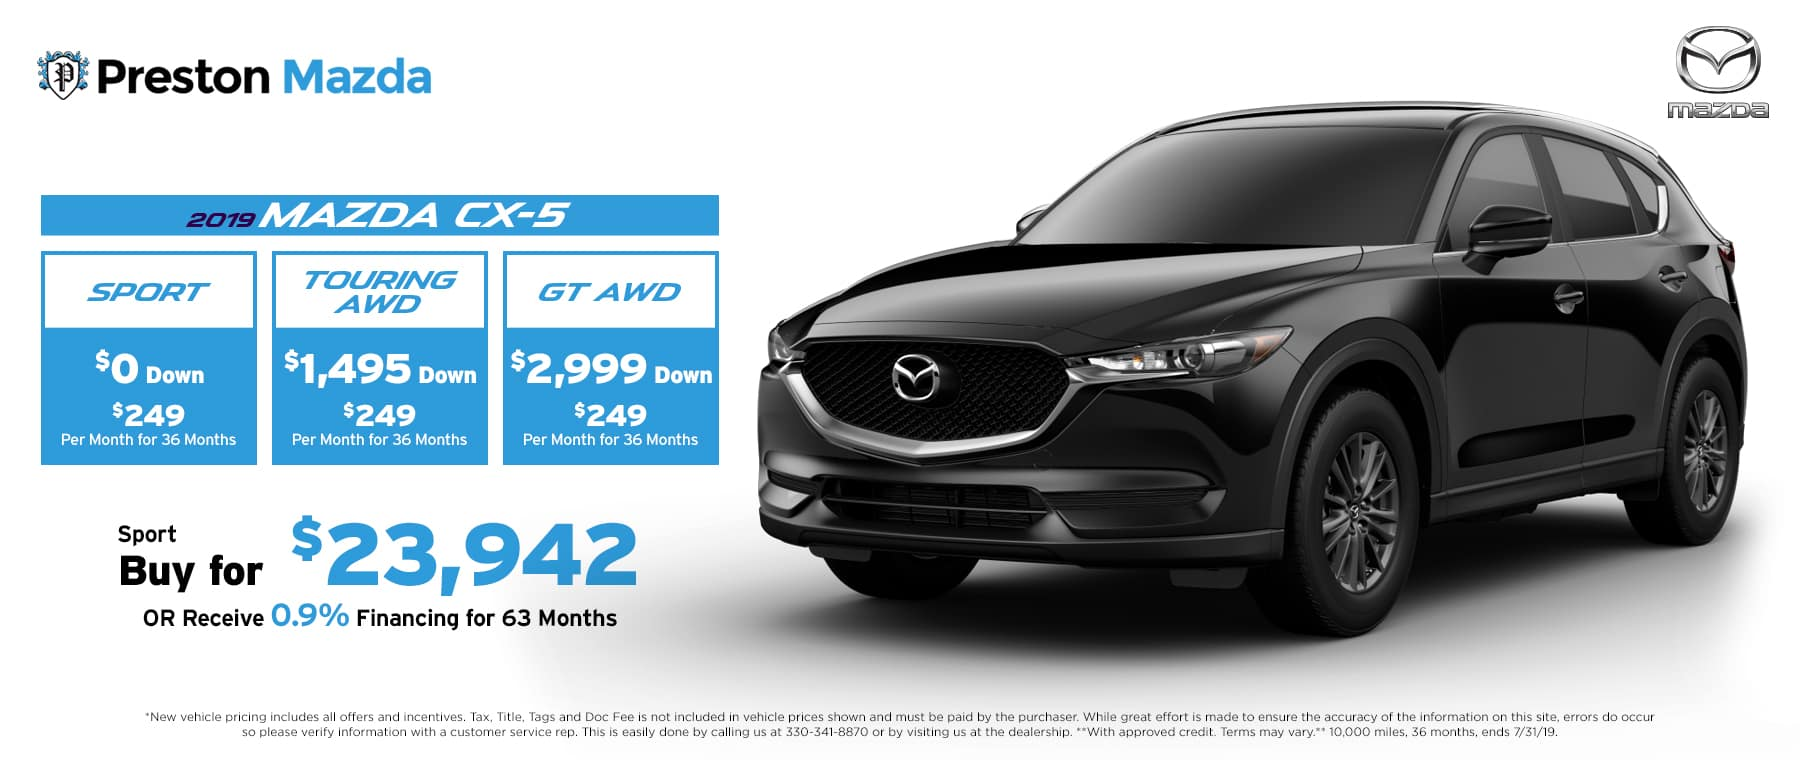 July special on the 2019 Mazda CX-5